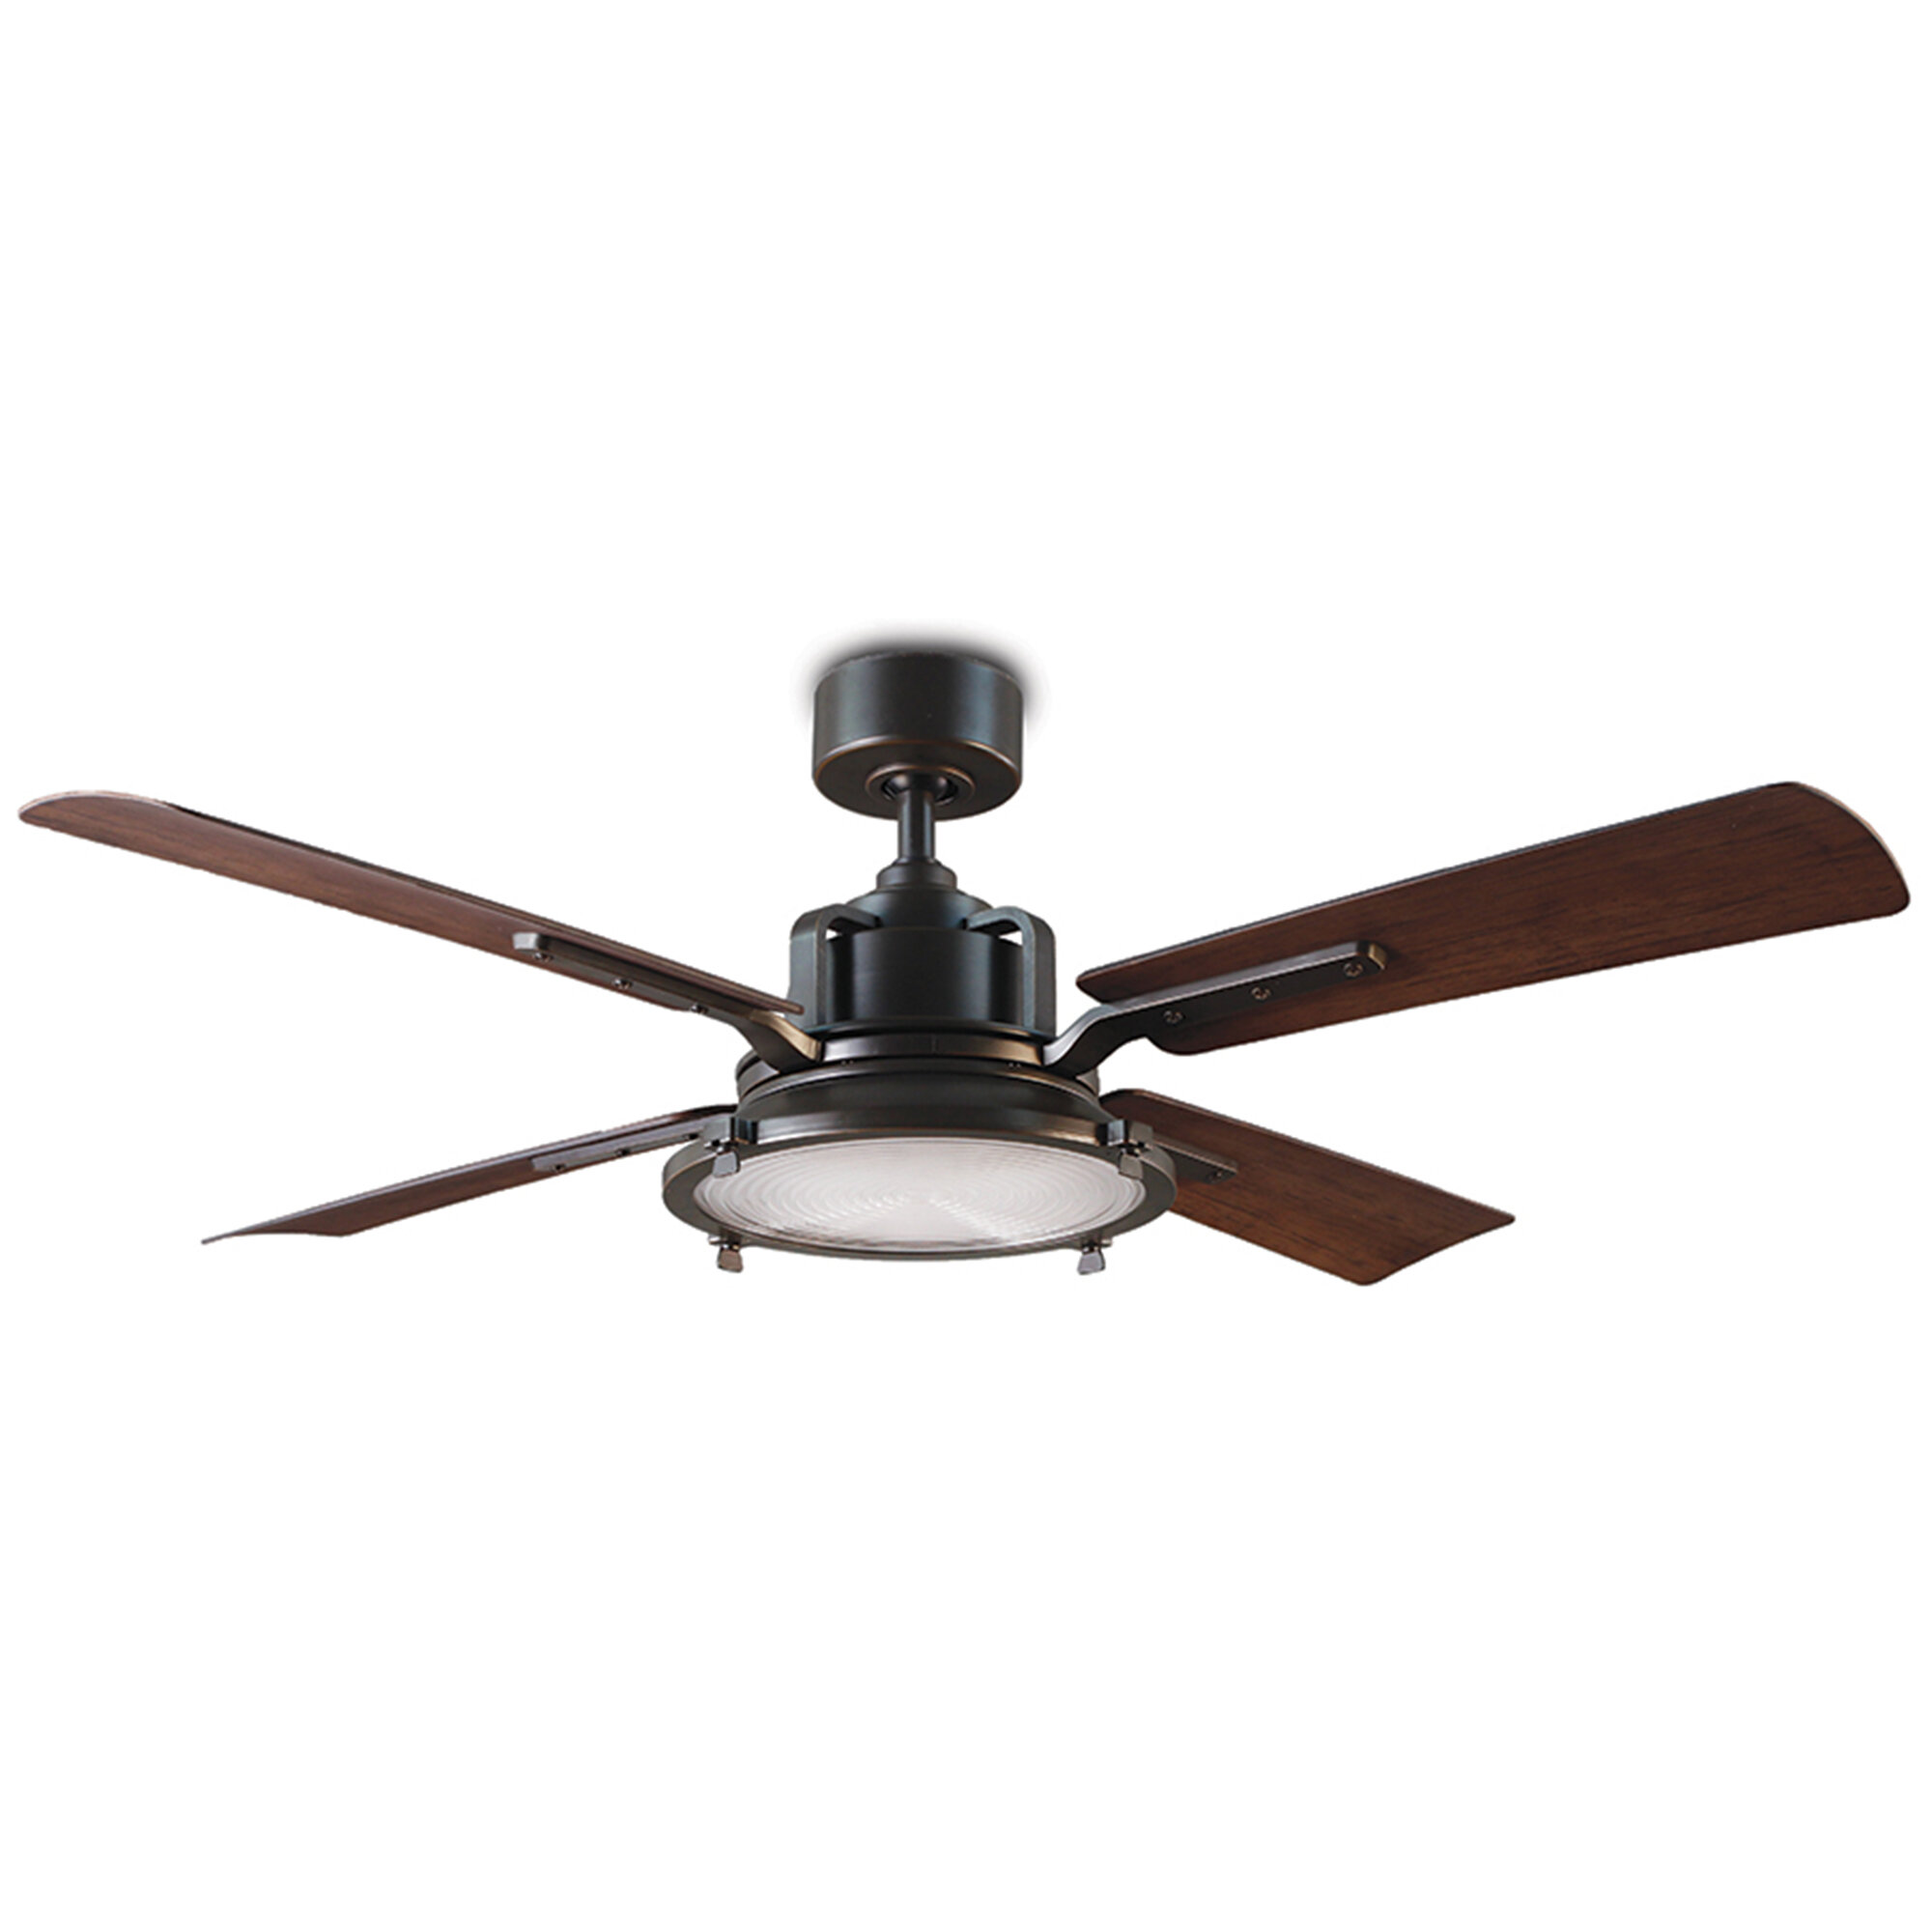 Modern Forms 56 Nautilus 4 Blade Outdoor Led Smart Standard Ceiling Fan With Wall Control And Light Kit Included Reviews Wayfair